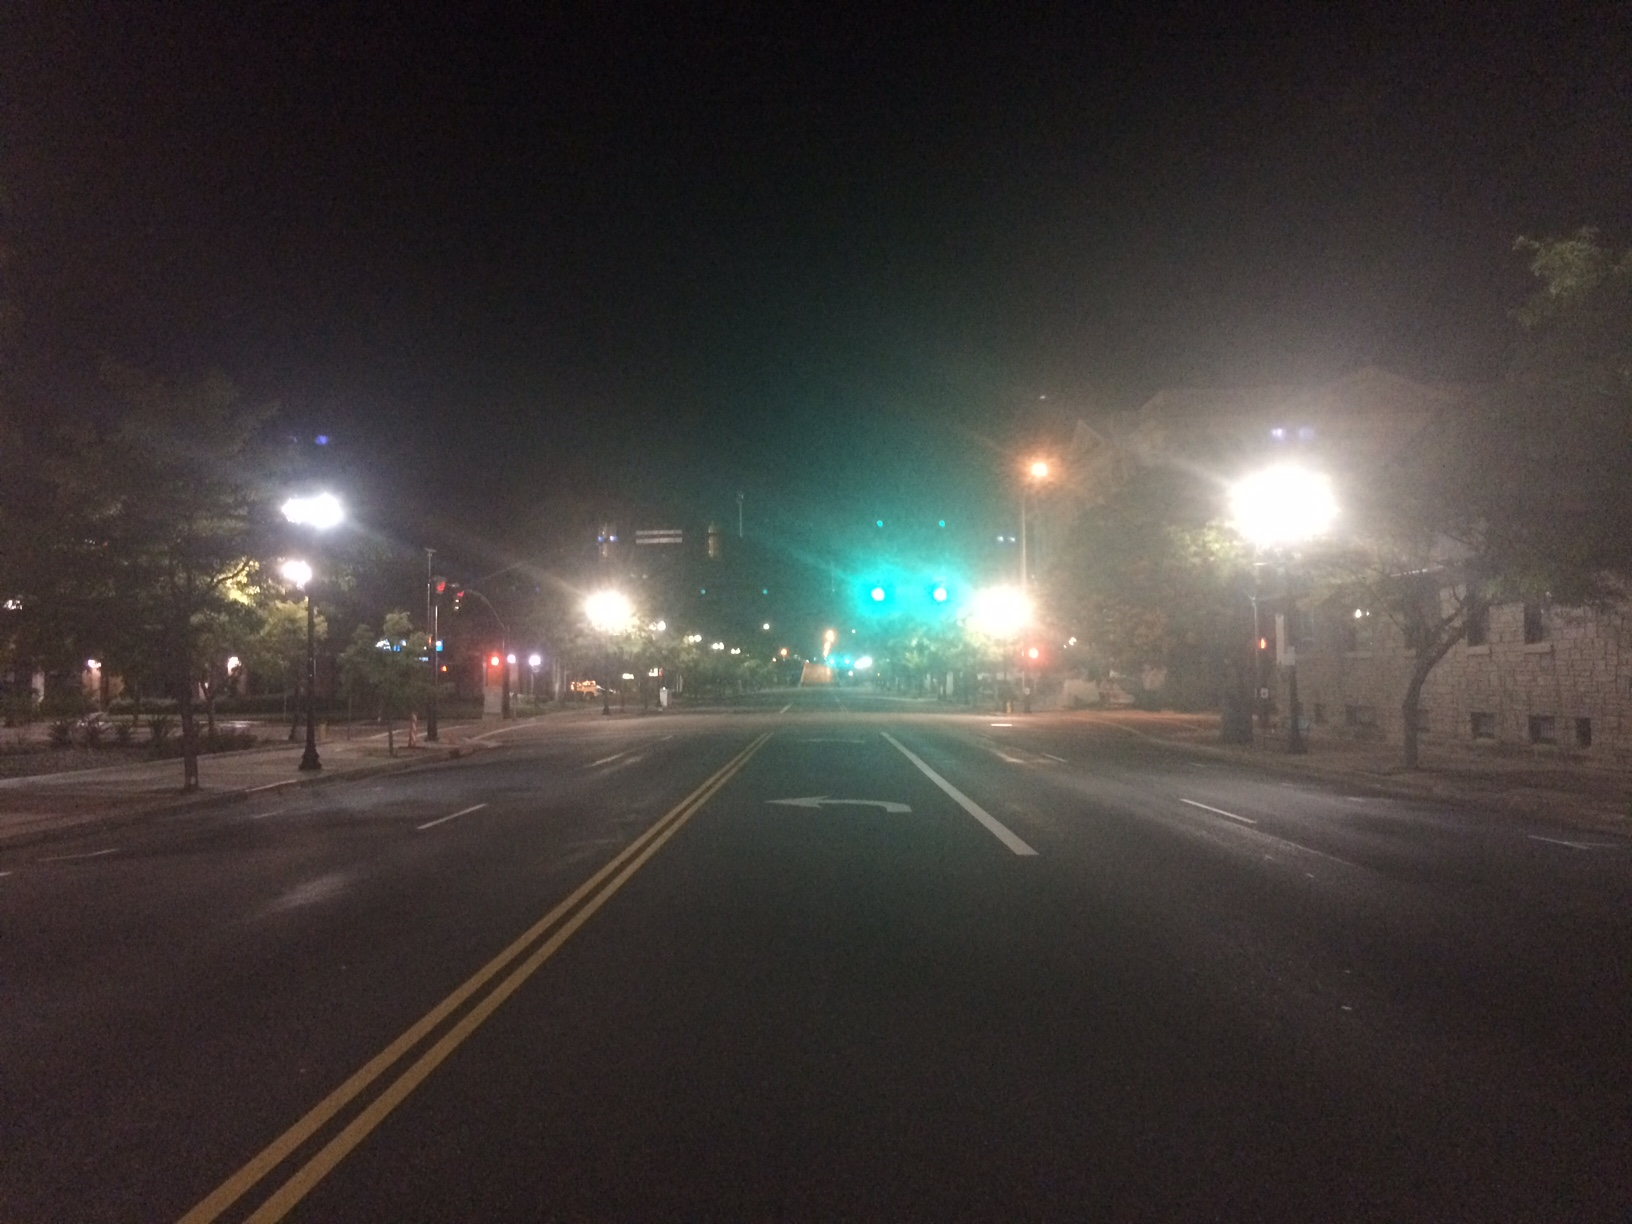 Standing in the middle of the street in a raging downtown Ogden at like 9:30pm.